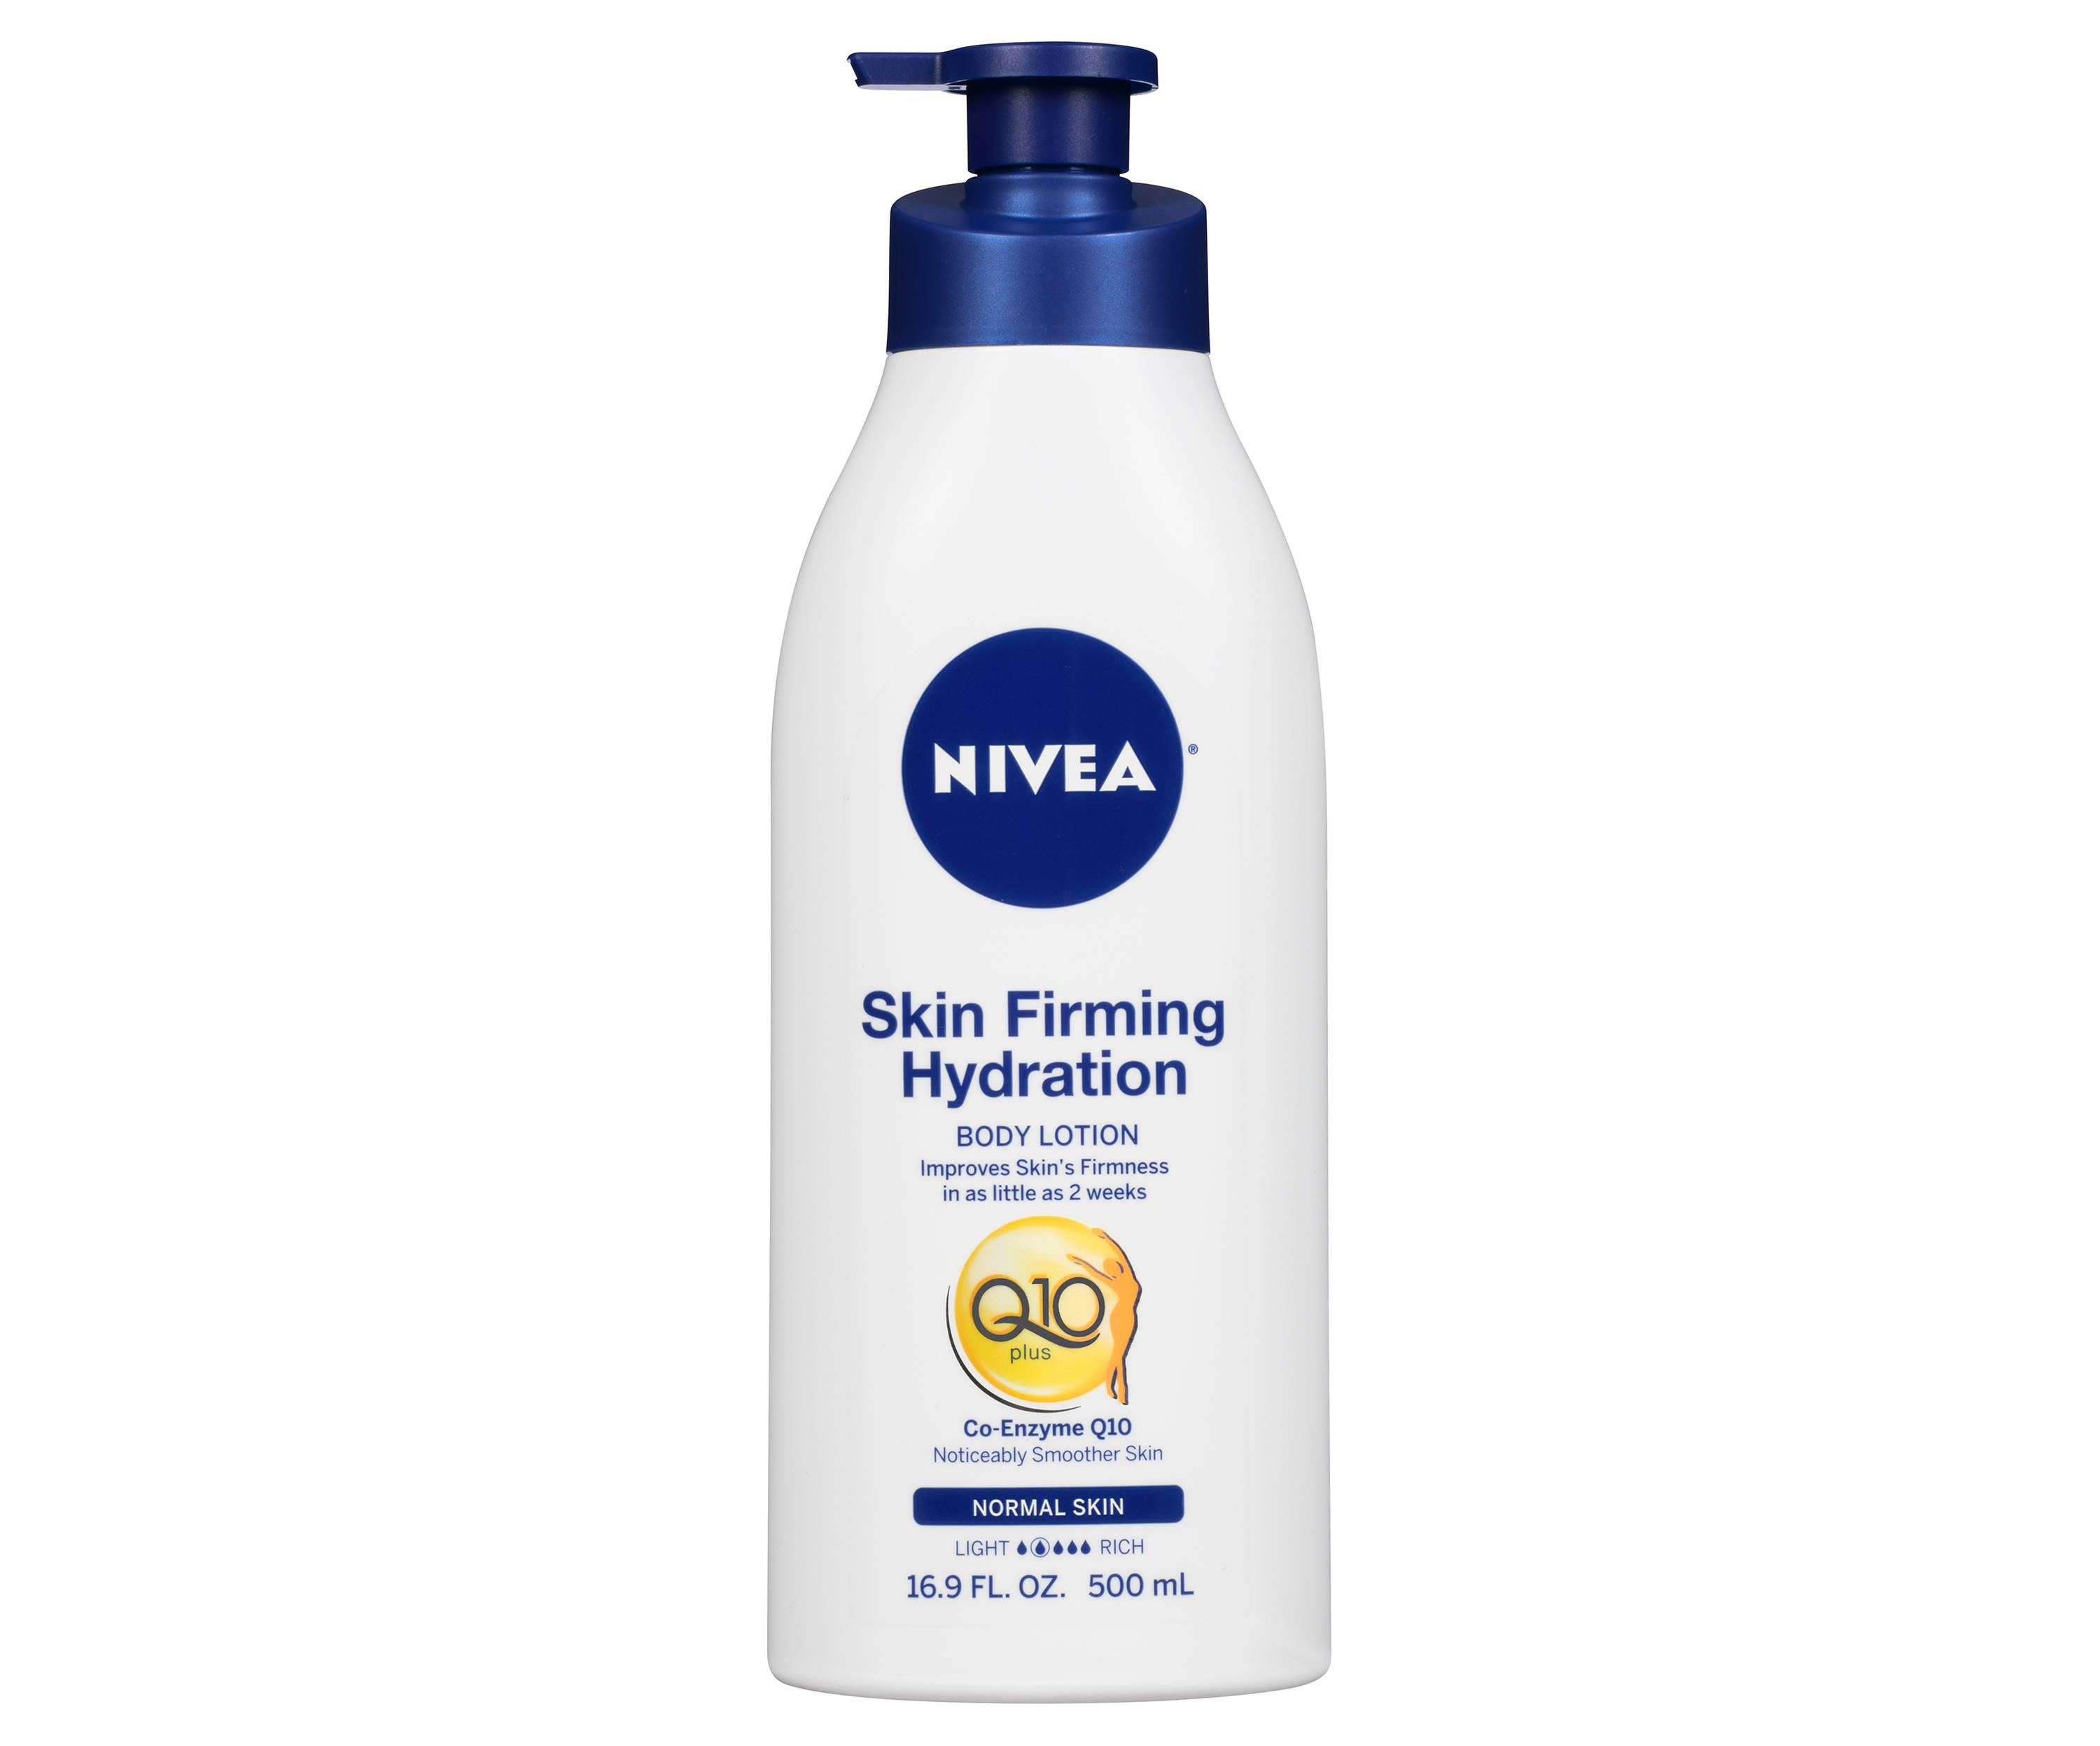 Nivea Skin Firming Hydration Body Lotion